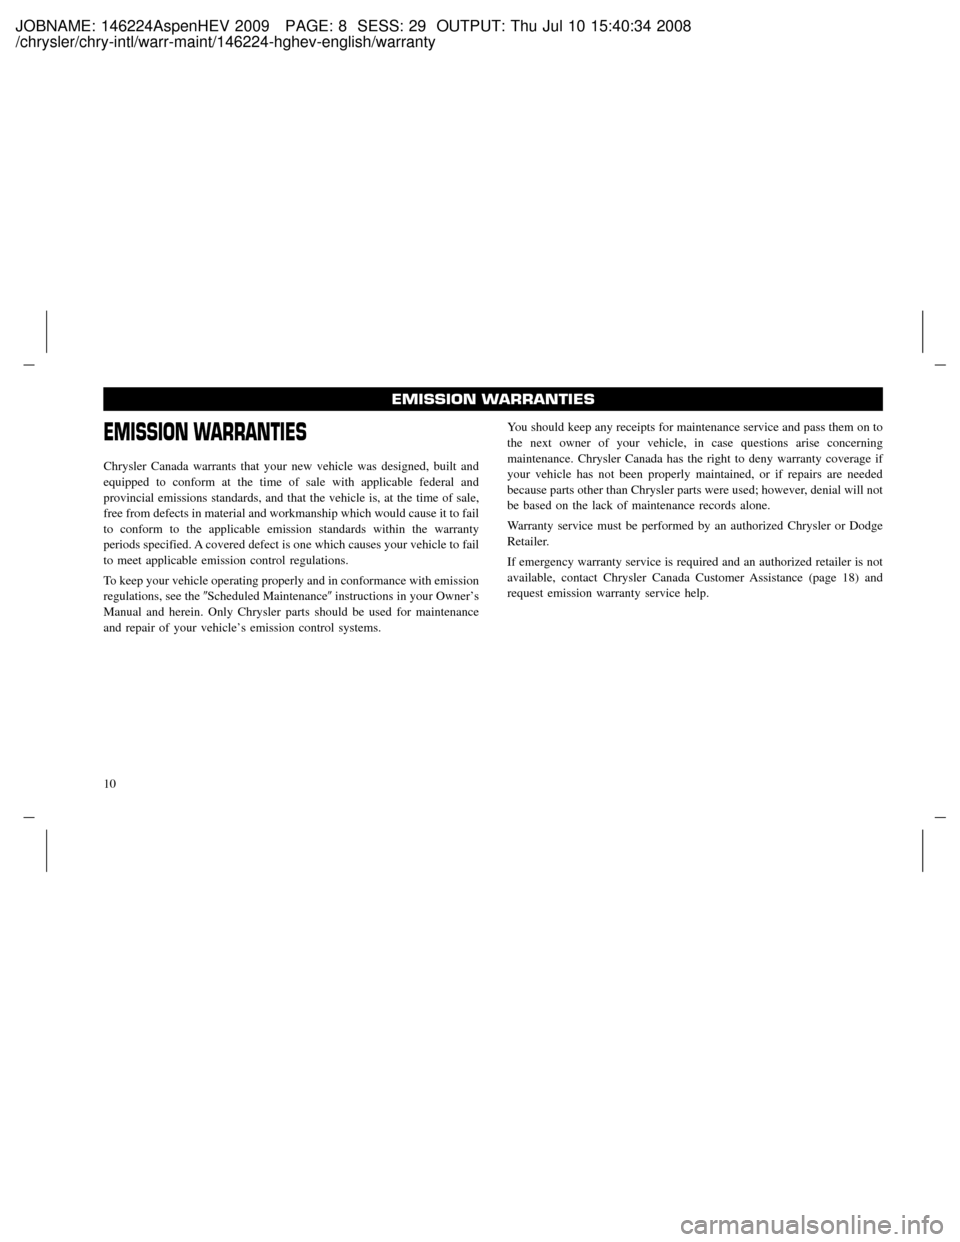 CHRYSLER ASPEN HYBRID 2009 2.G Owners Manual (68 Pages)